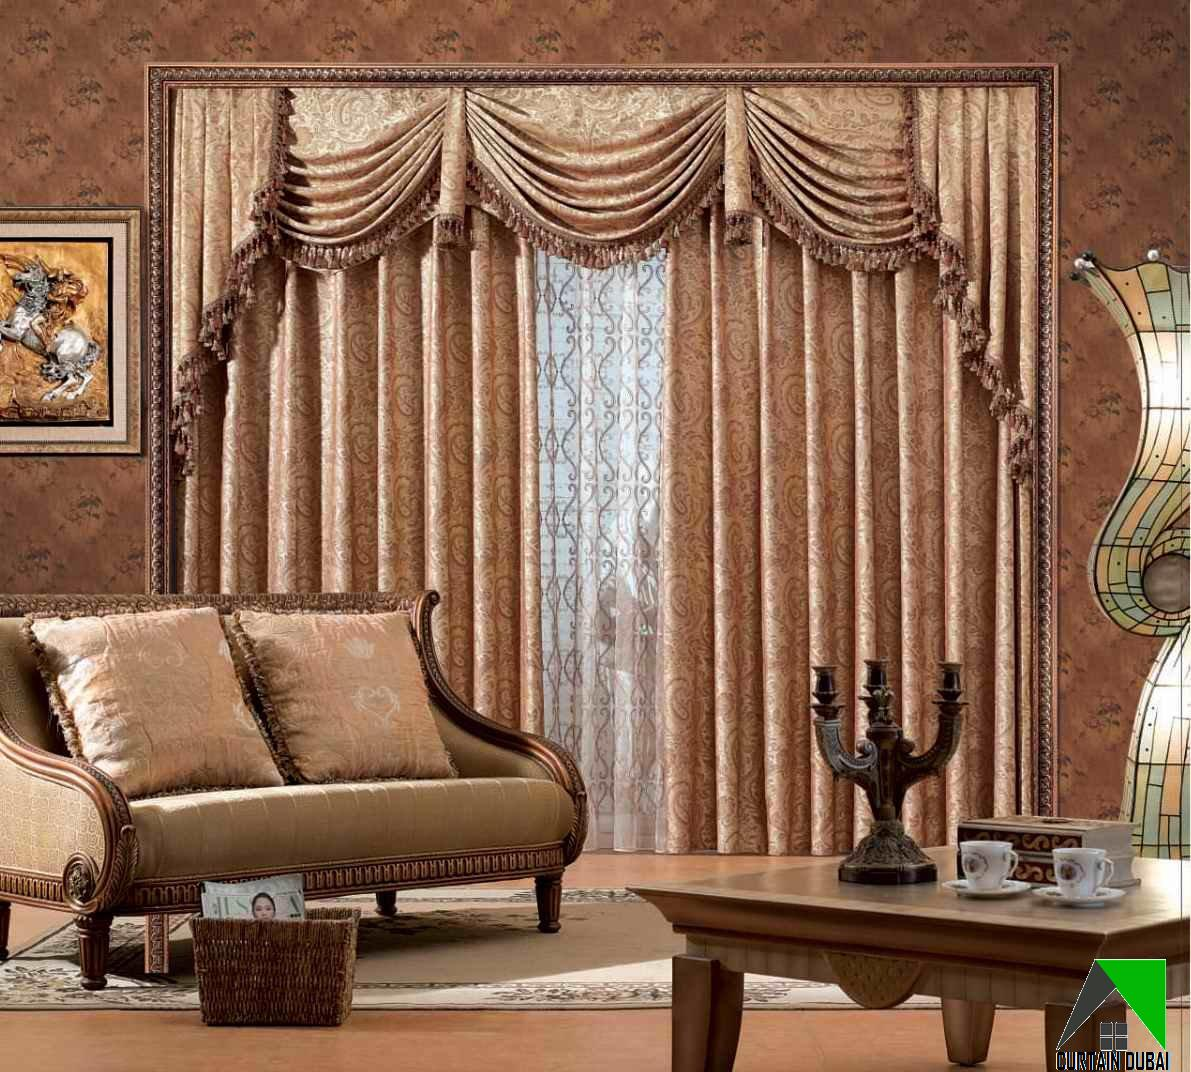 curtain block best motorized pinterest images for blackout on curtains style hotel fireproof arabic out luxury